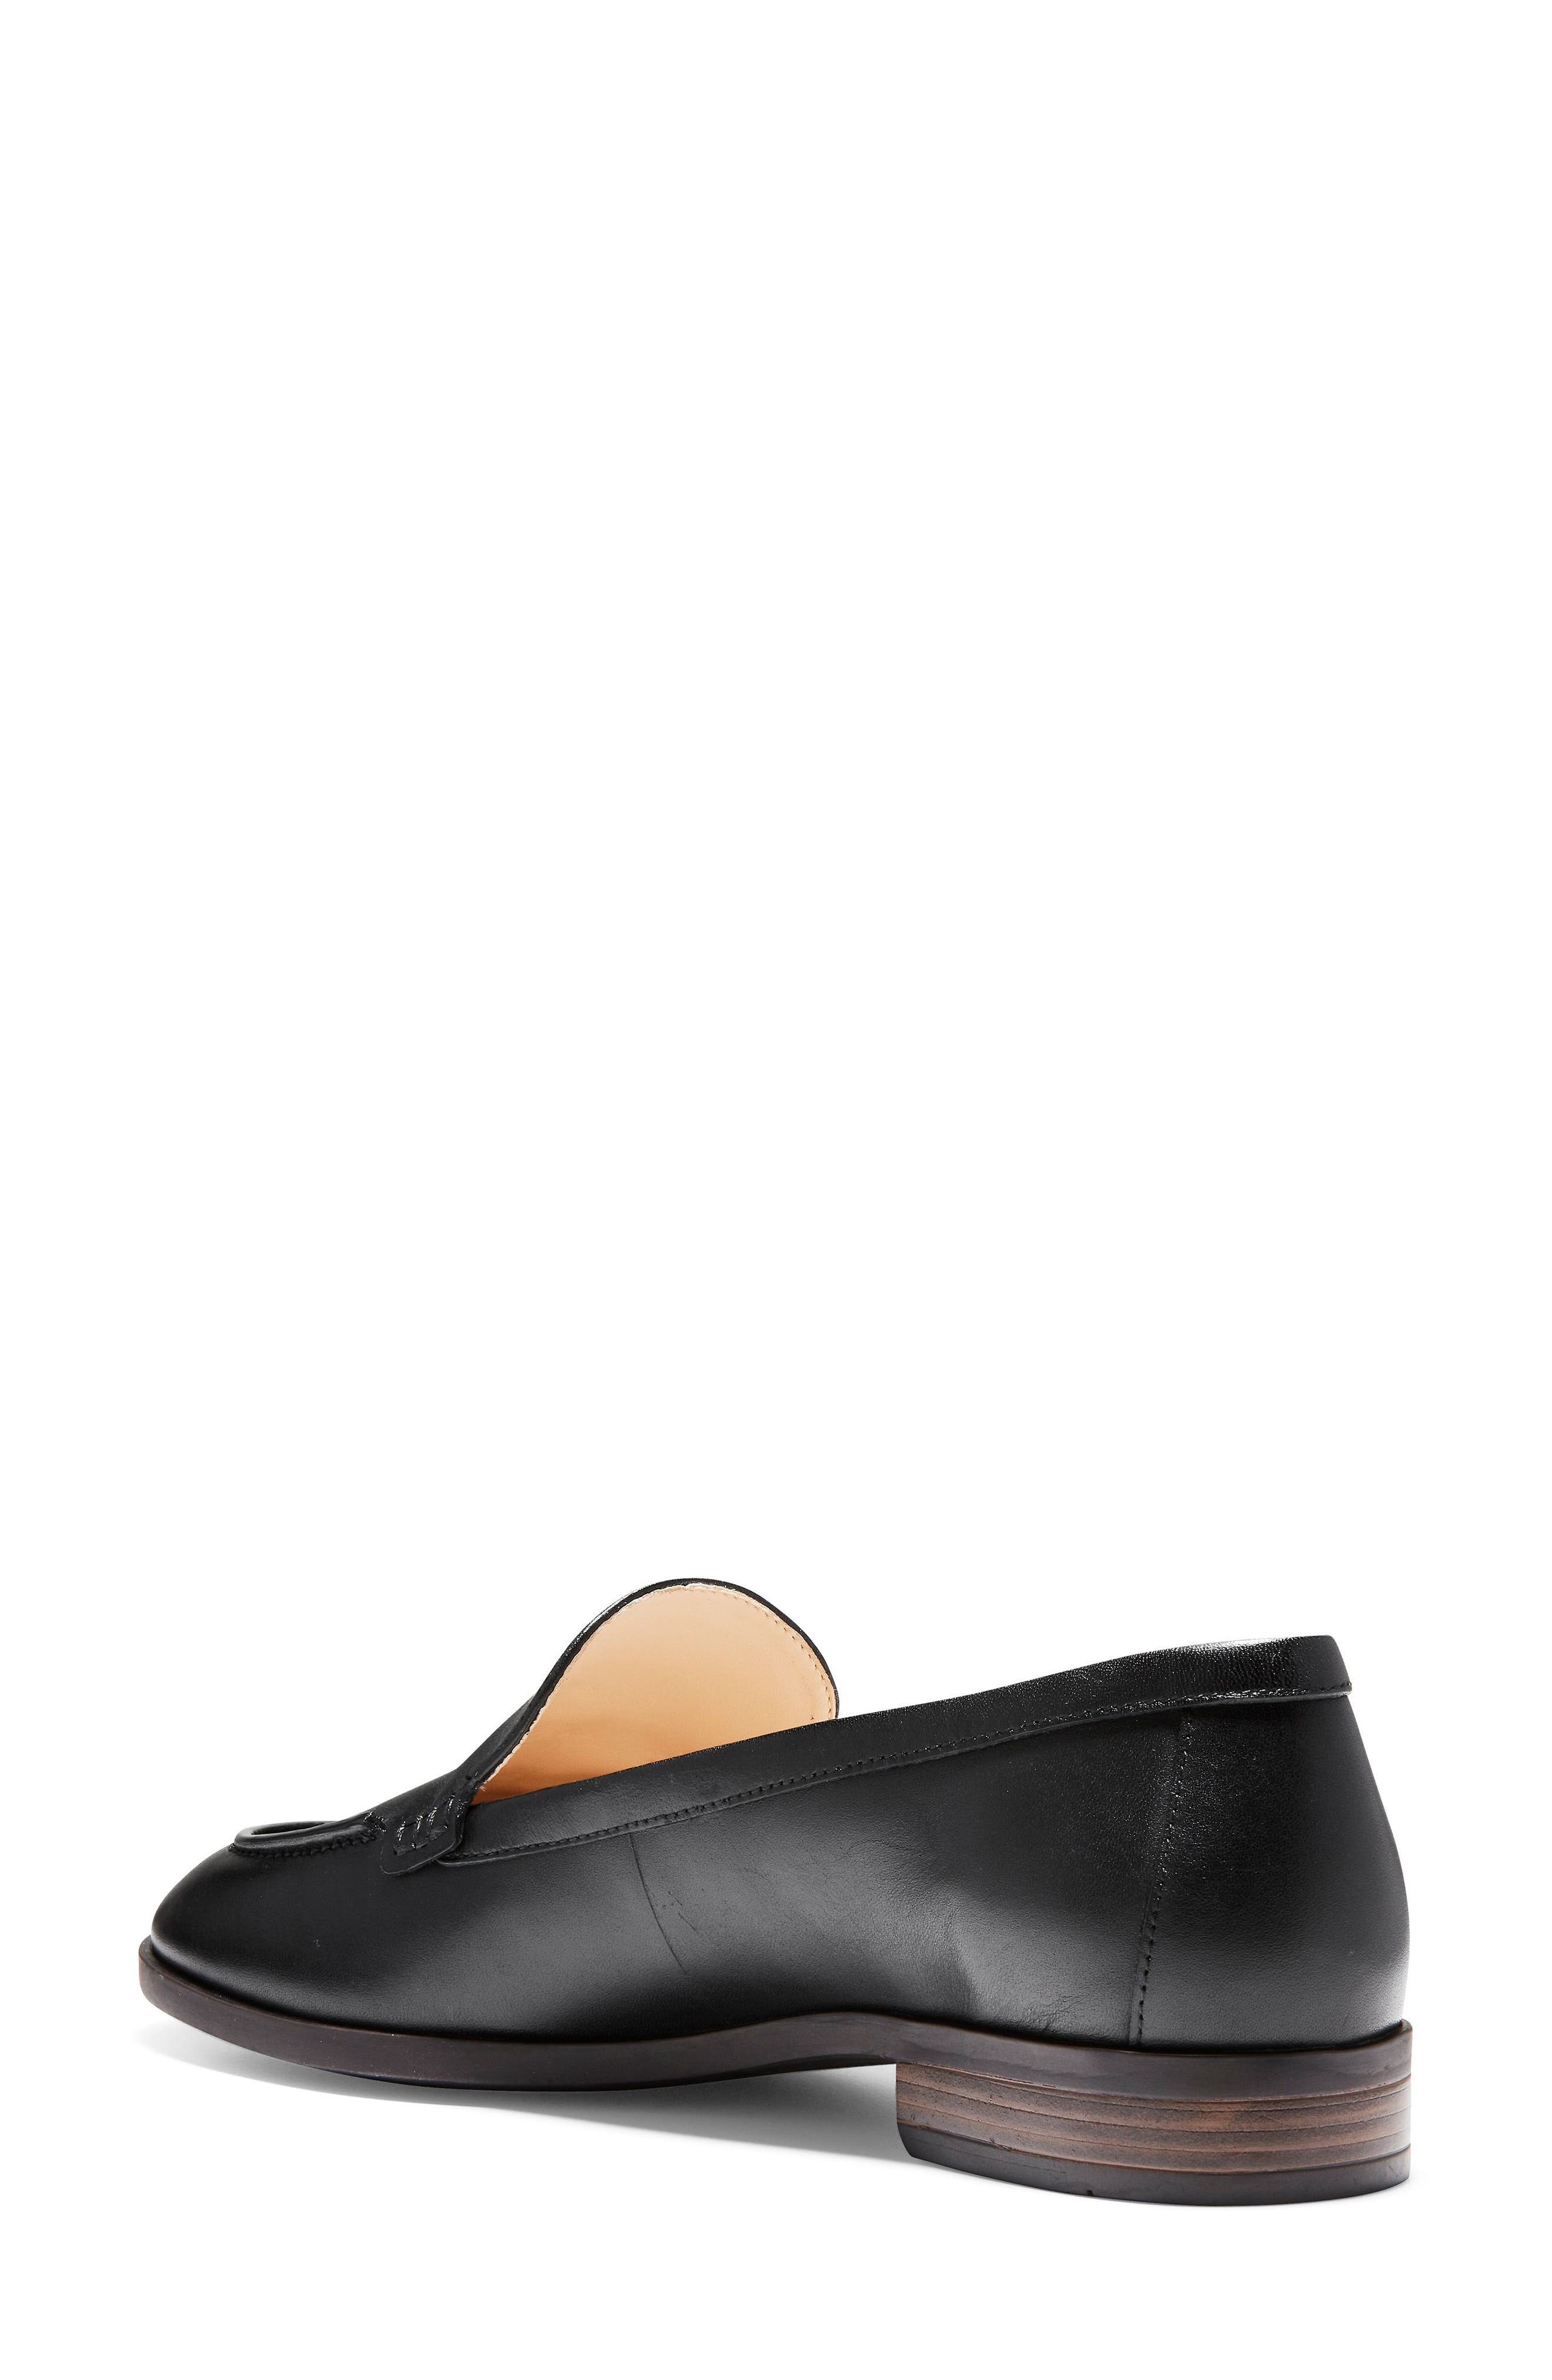 Pinch Lobster Loafer,                             Alternate thumbnail 6, color,